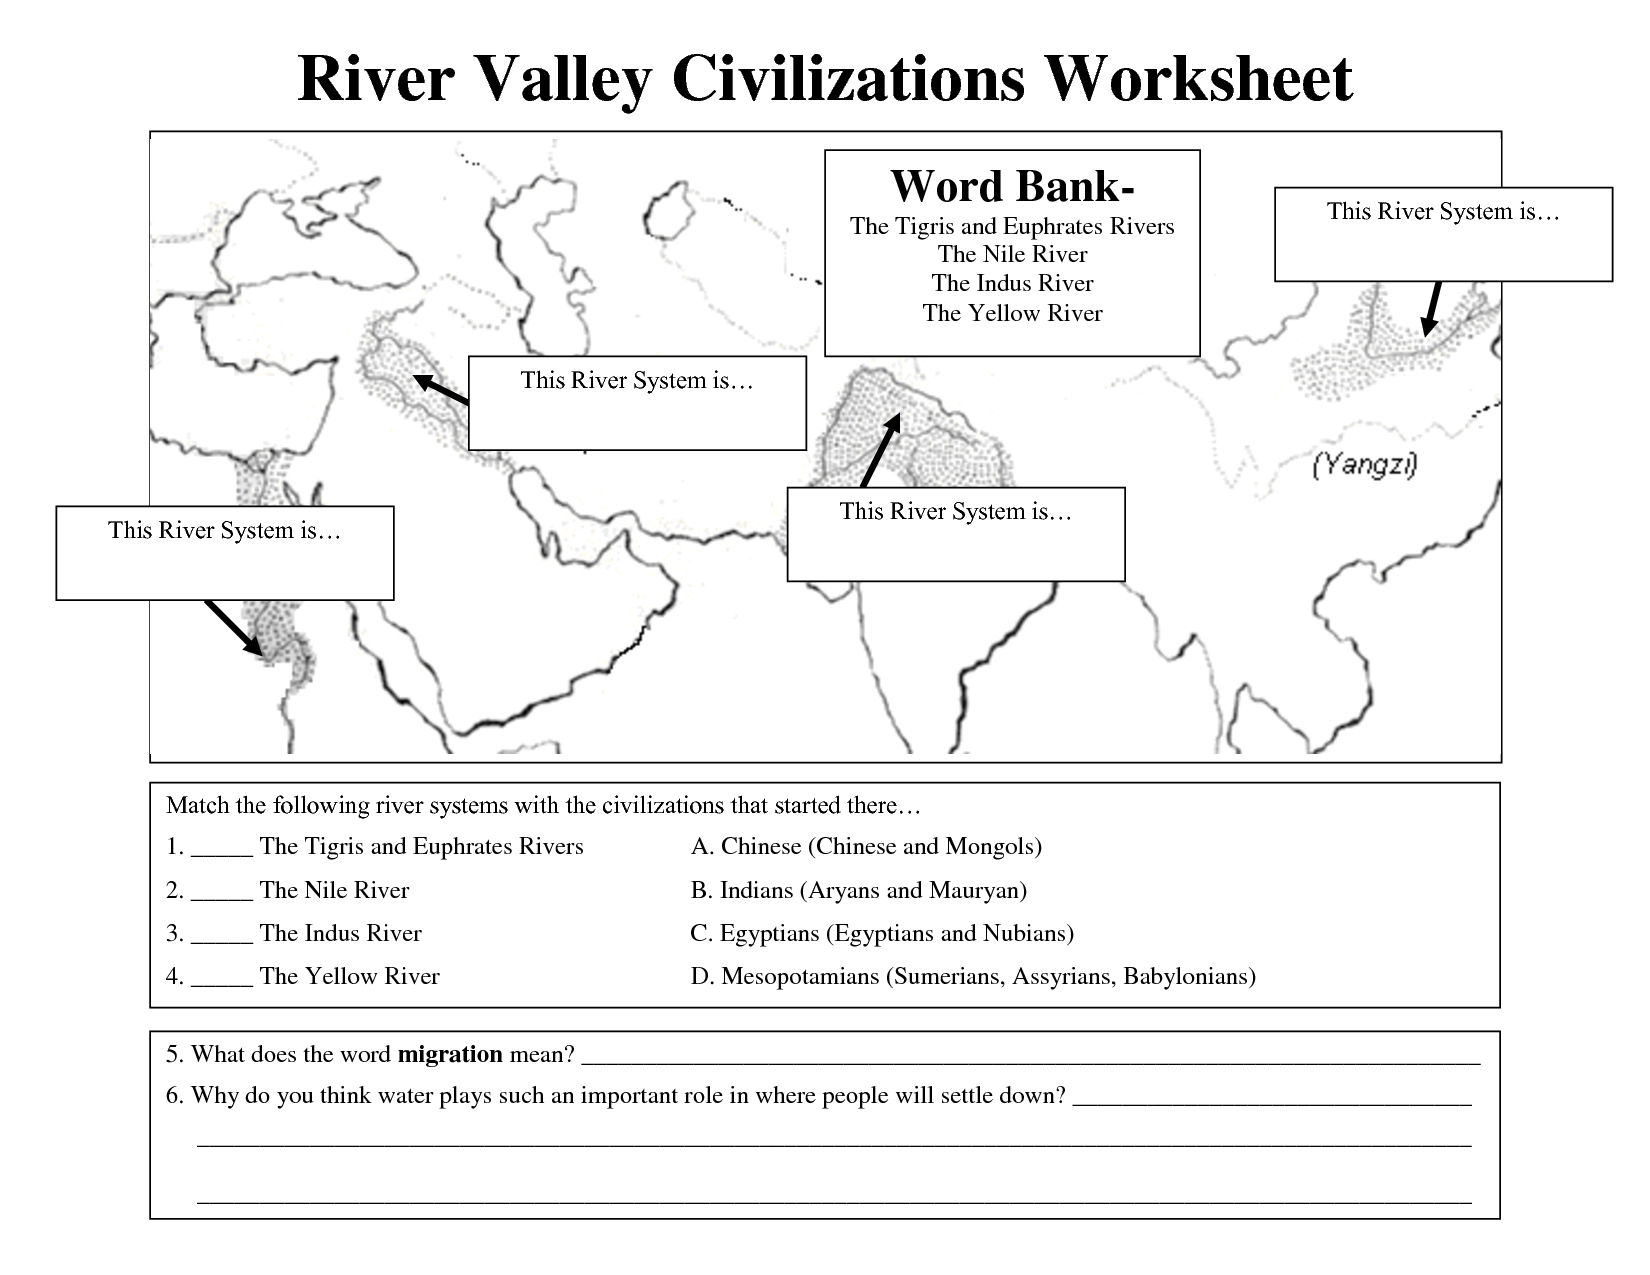 Early Civilizations Worksheet | River Valley Civilizations Worksheet | World History Printable Worksheets